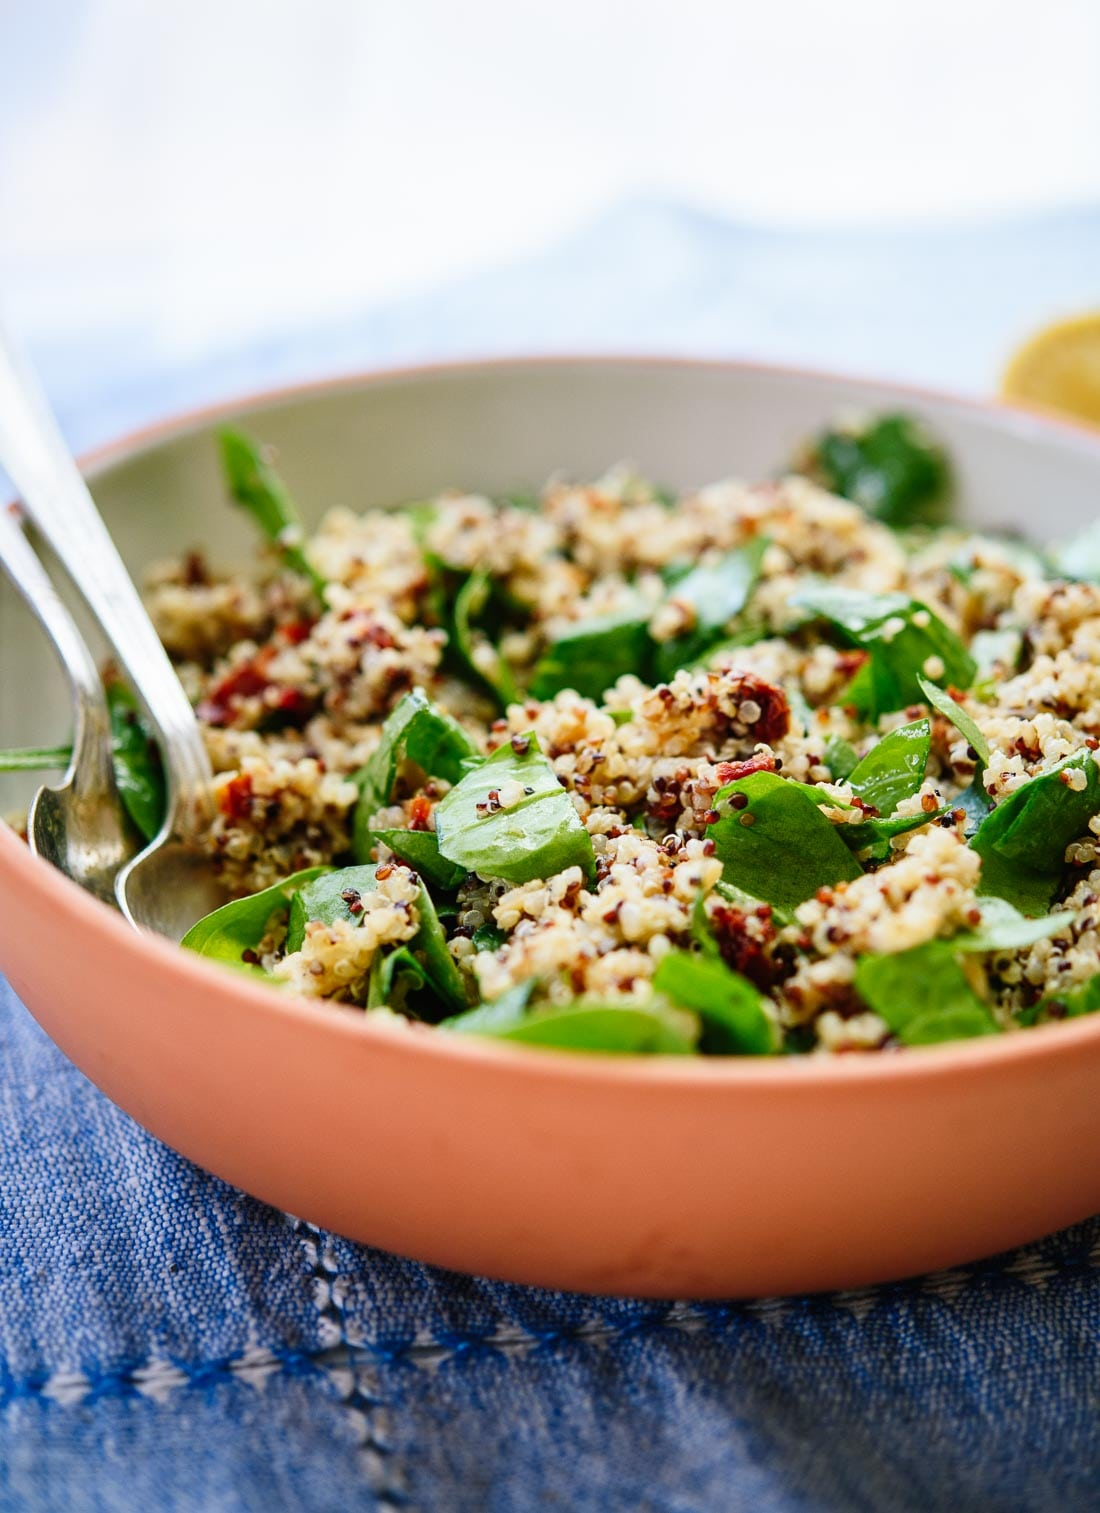 30 fabulous quinoa recipes tommys superfoods sun dried tomato spinach quinoa salad recipe forumfinder Images